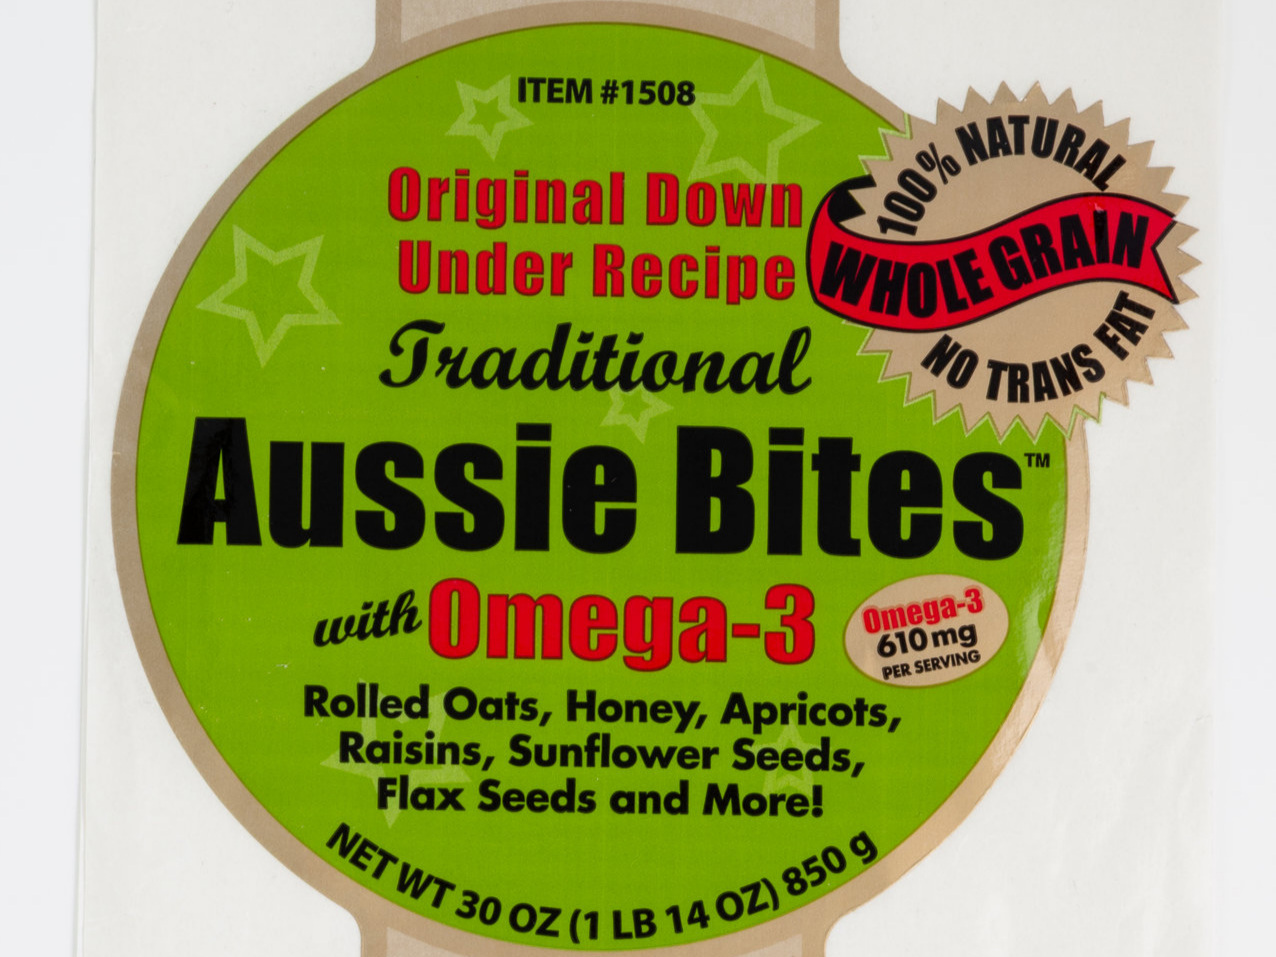 The first Aussie Bites label